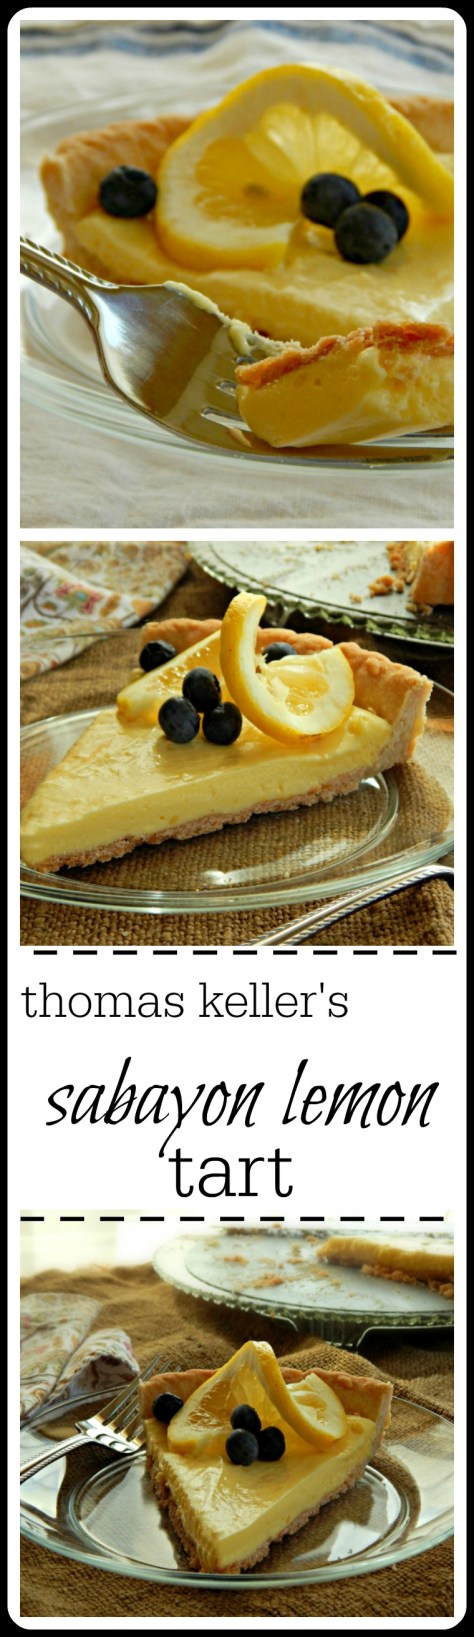 Light and fluffy, creamy & dreamy this tart takes a LOT of whisking - but it is soooo worth the work. Adapted from Chef Thomas Keller